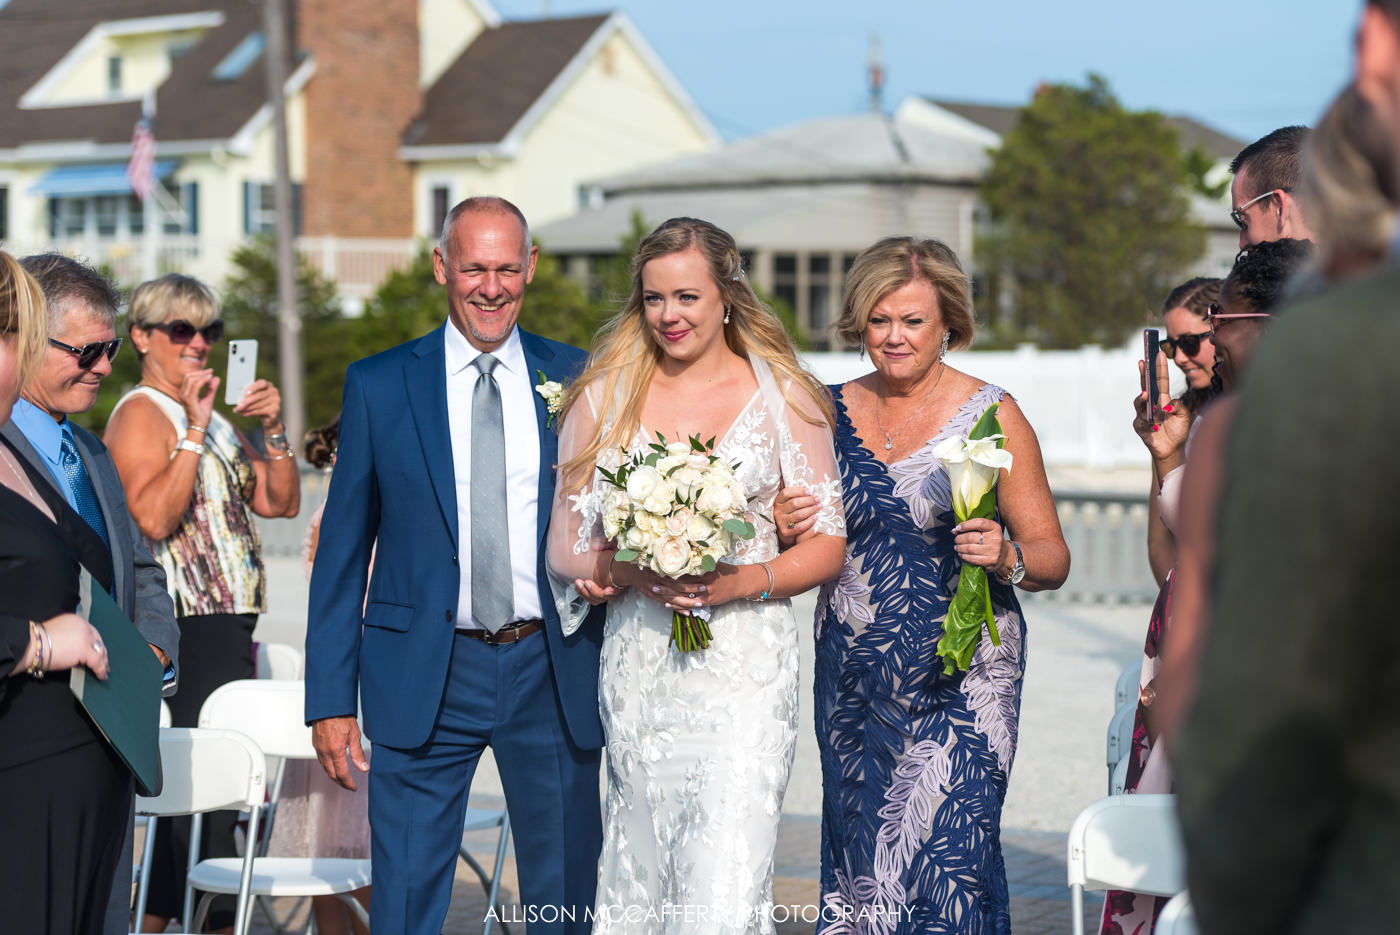 Parents walking their daughter down the aisle on her wedding day at Brant Beach Yacht Club